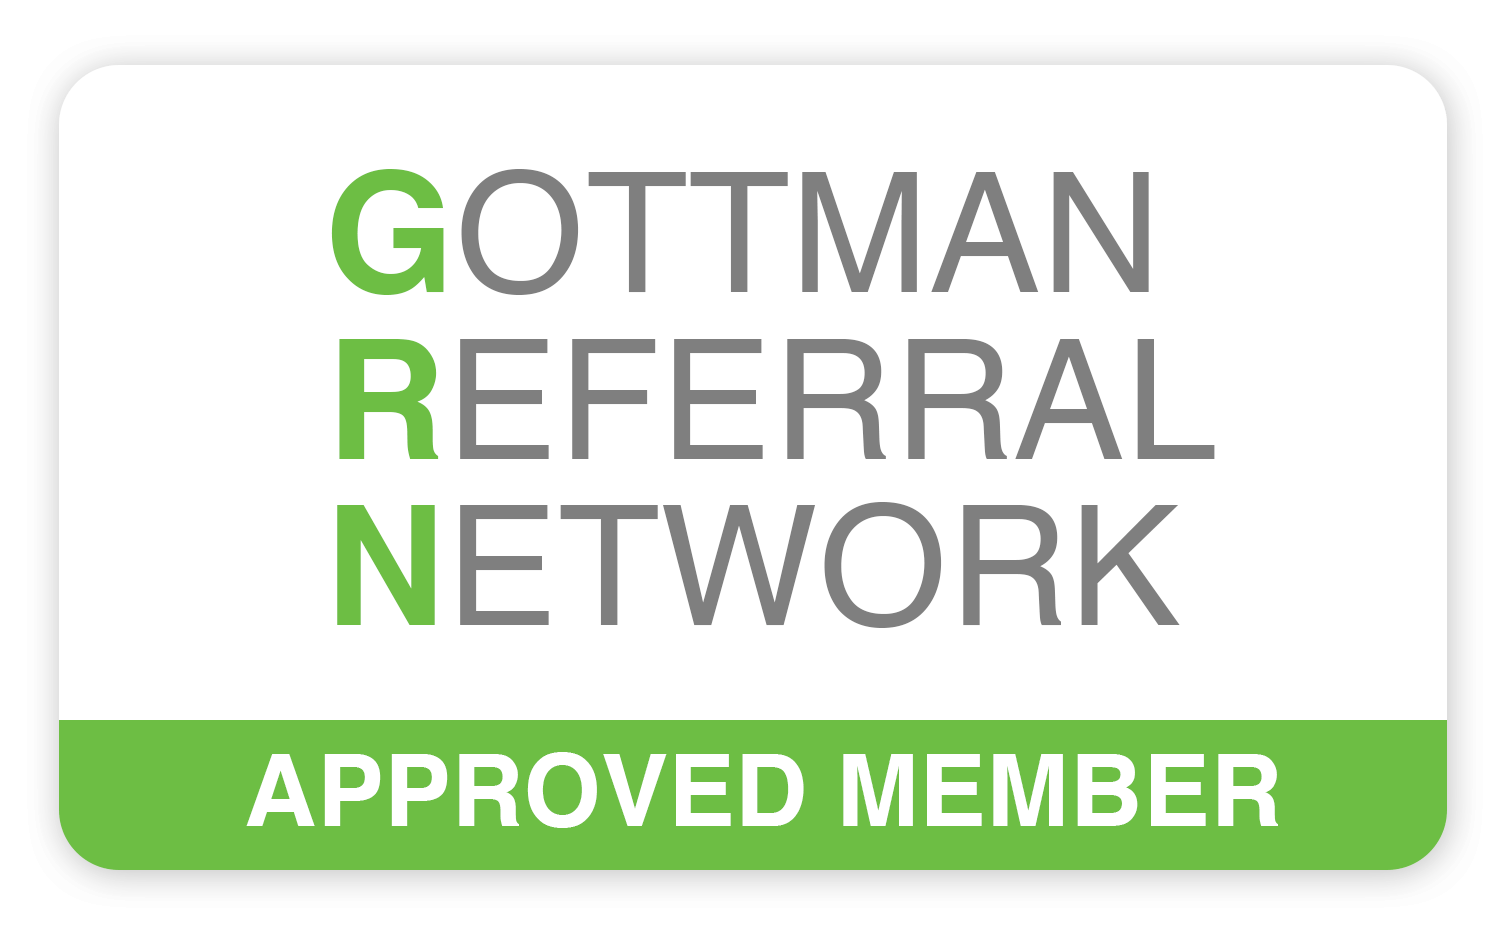 Feniks de la Fosse's profile on the Gottman Referral Network